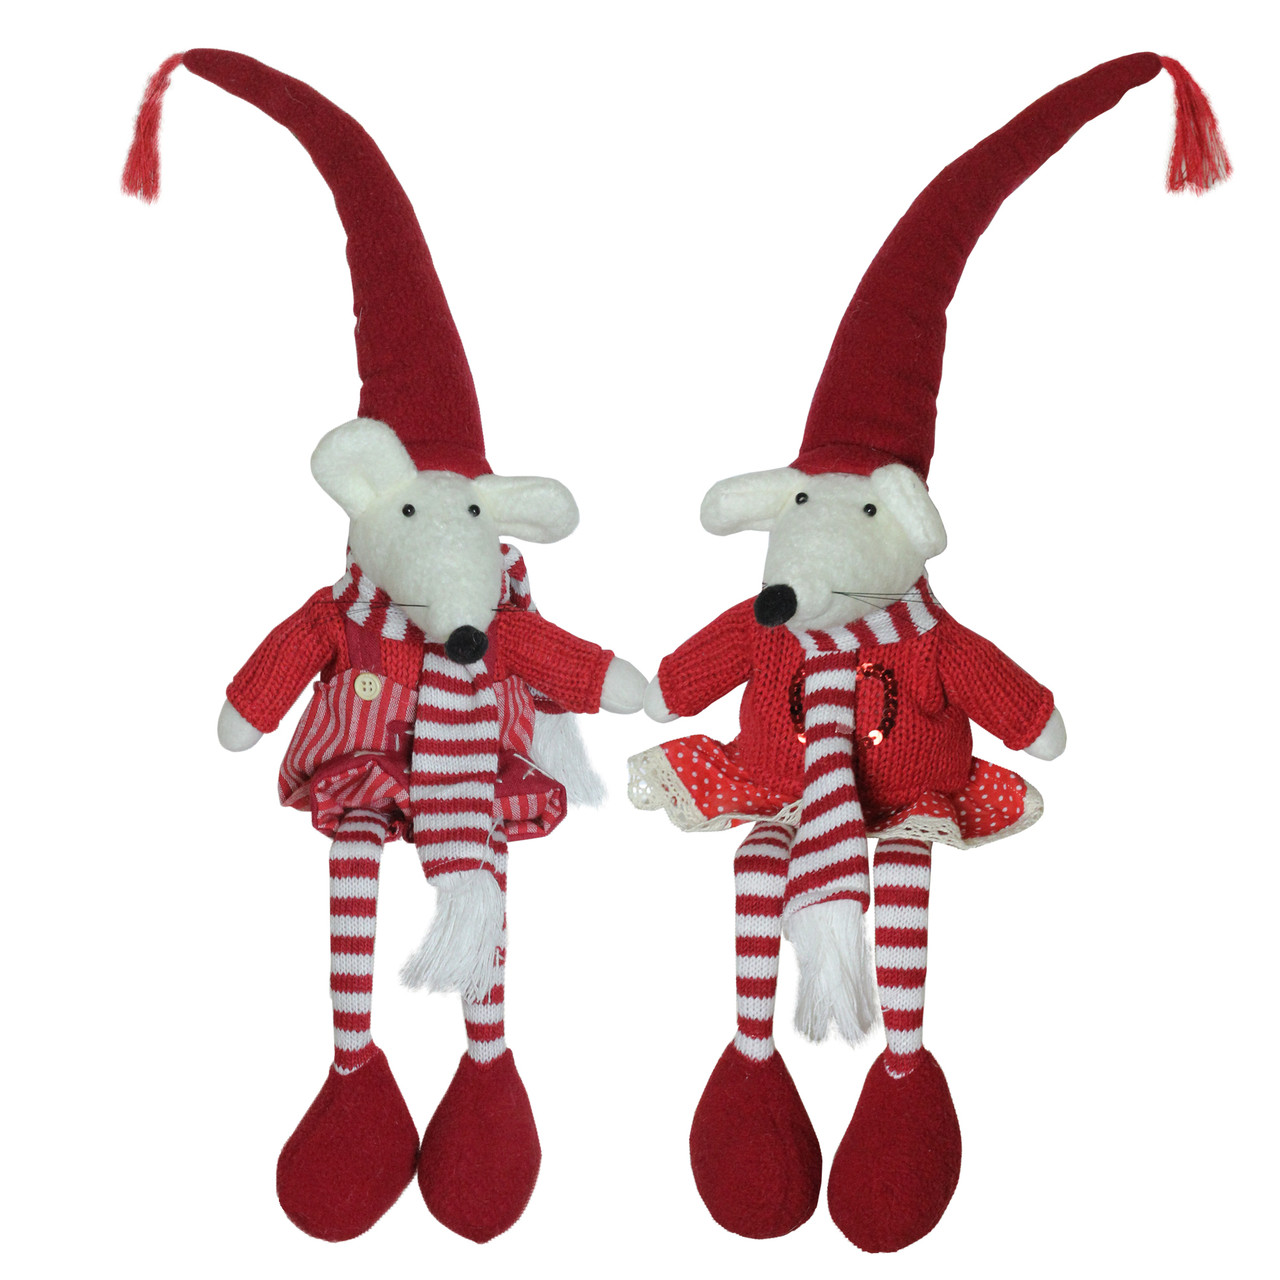 set of 2 plush red and white striped sitting christmas boy and girl mice with heart decorations 15 32637510